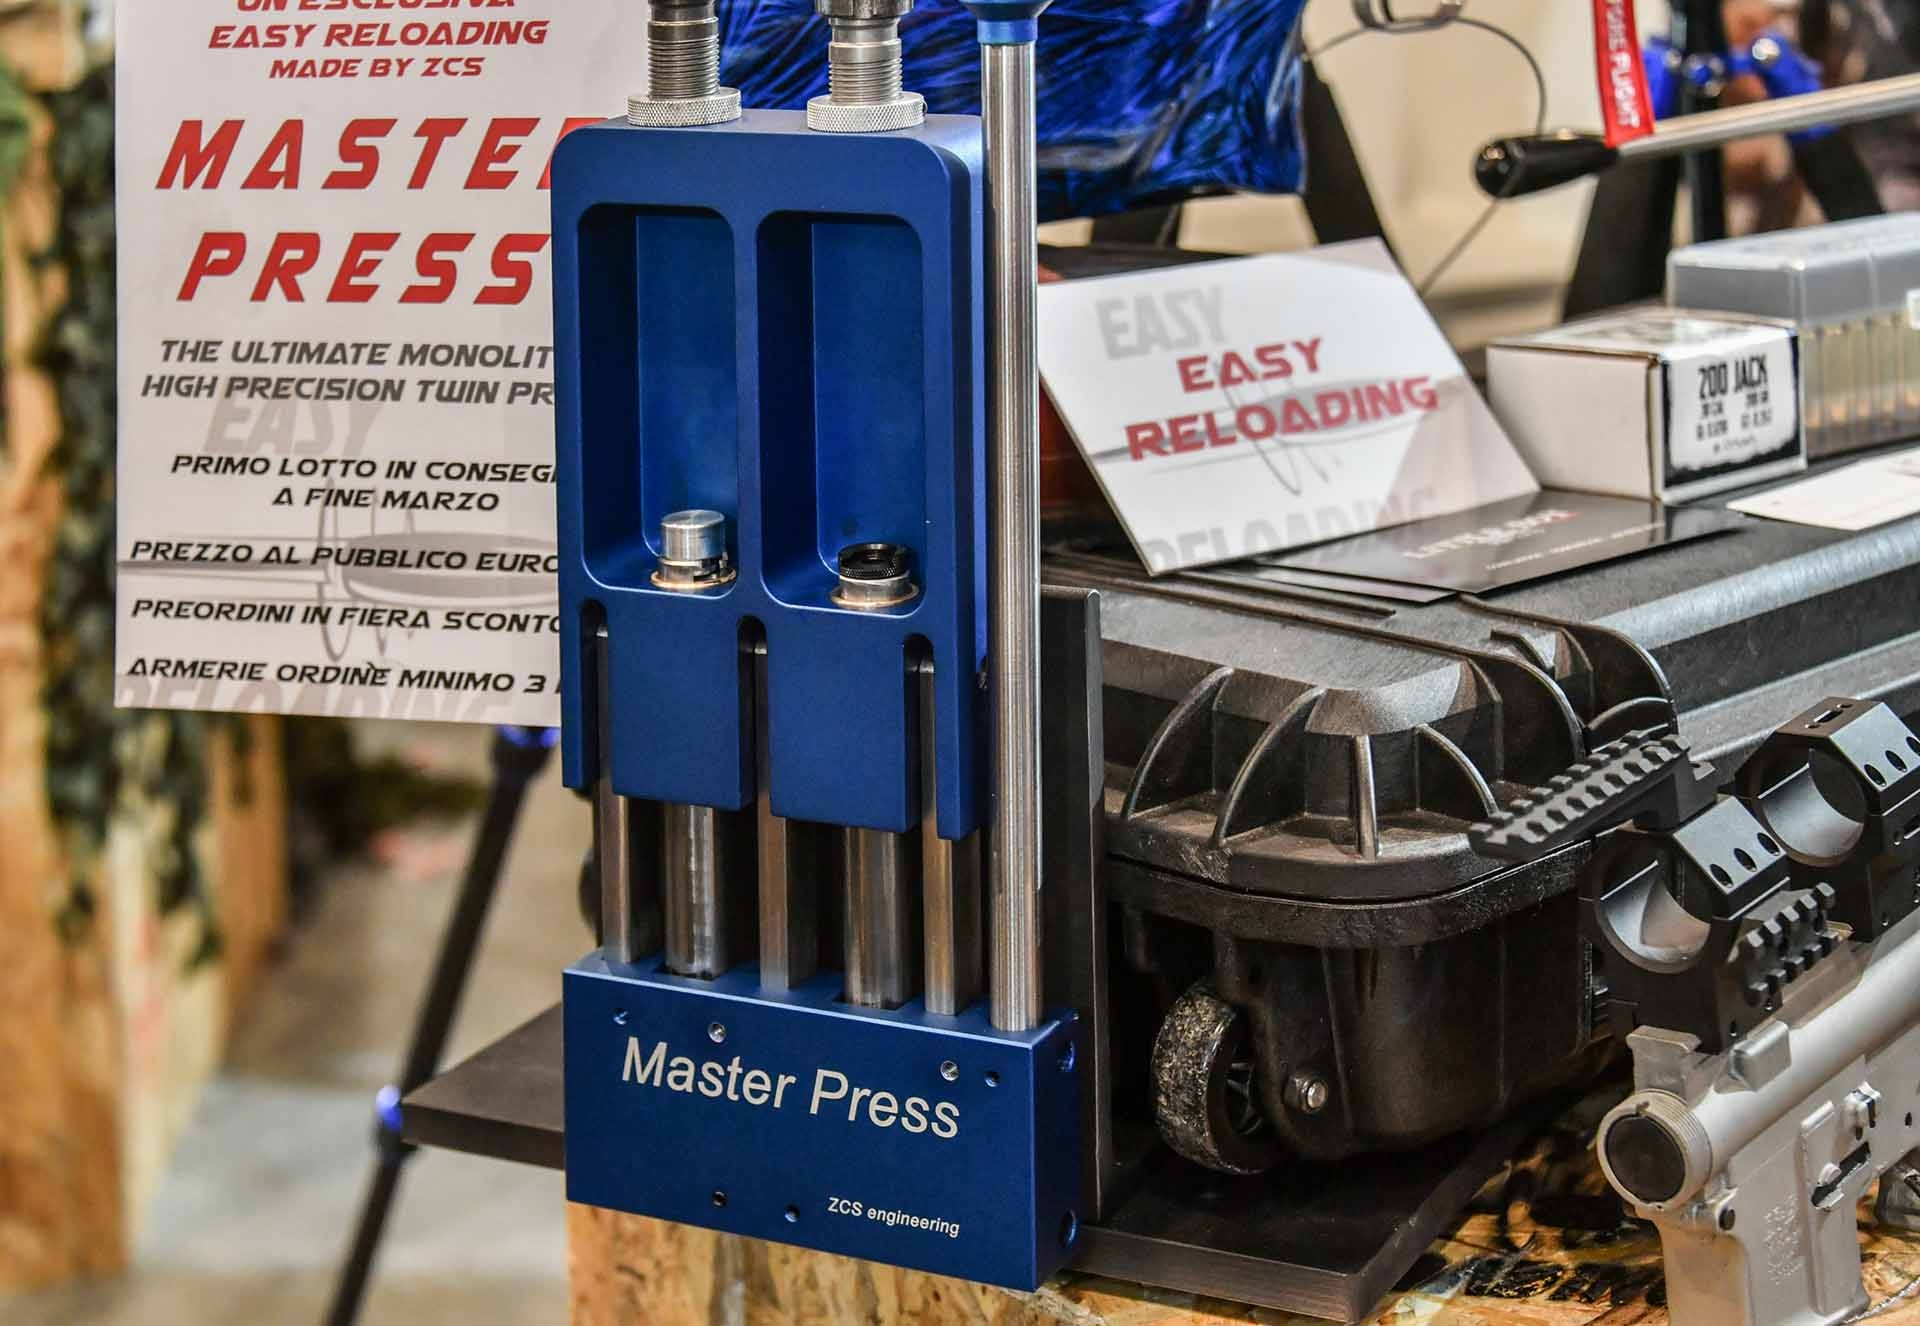 accessori: Pressa monolitica Master Press da Easy Reloading